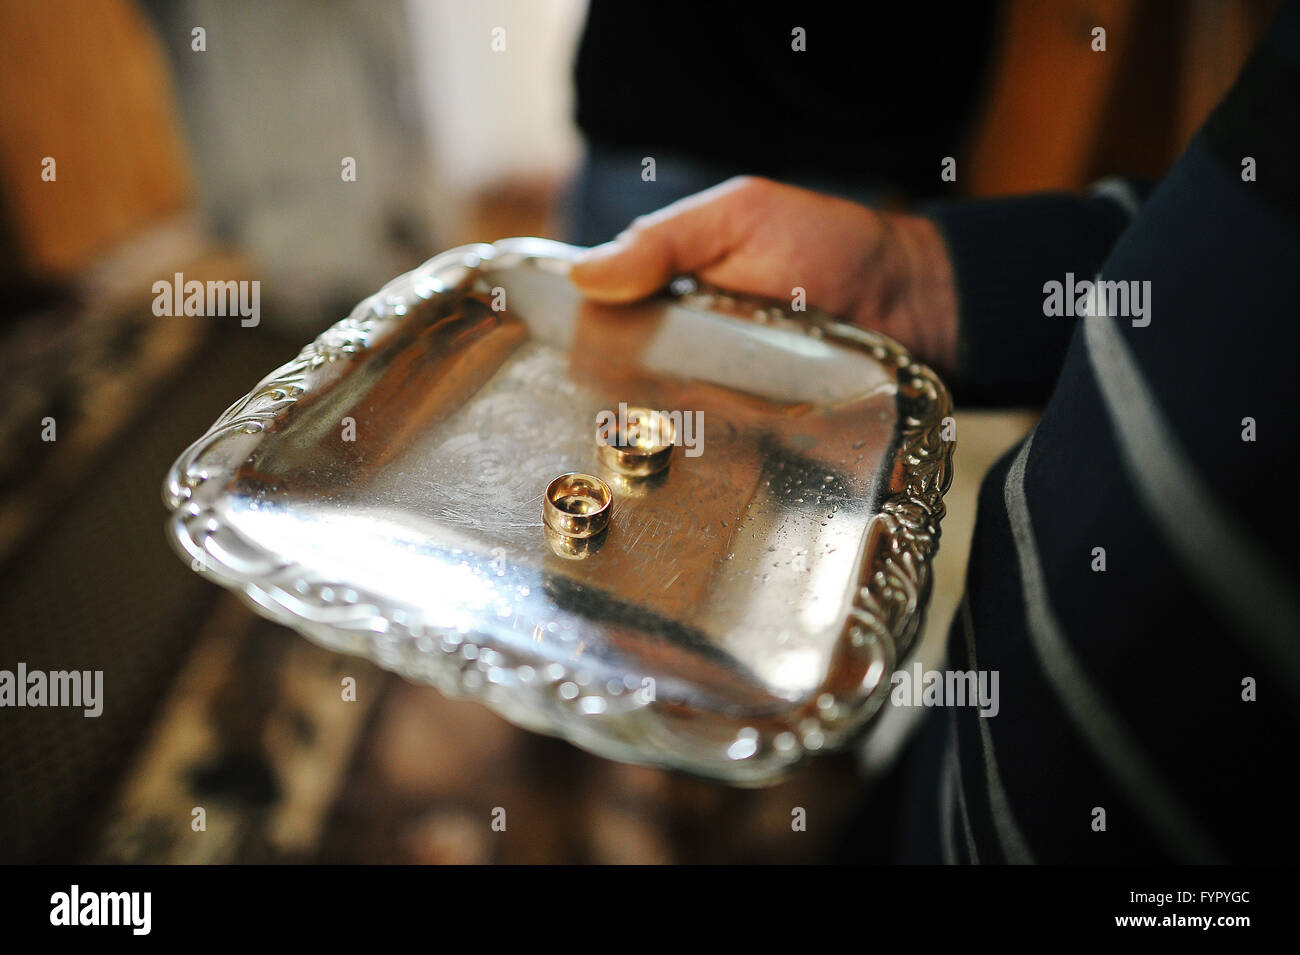 engagement rings - Stock Image